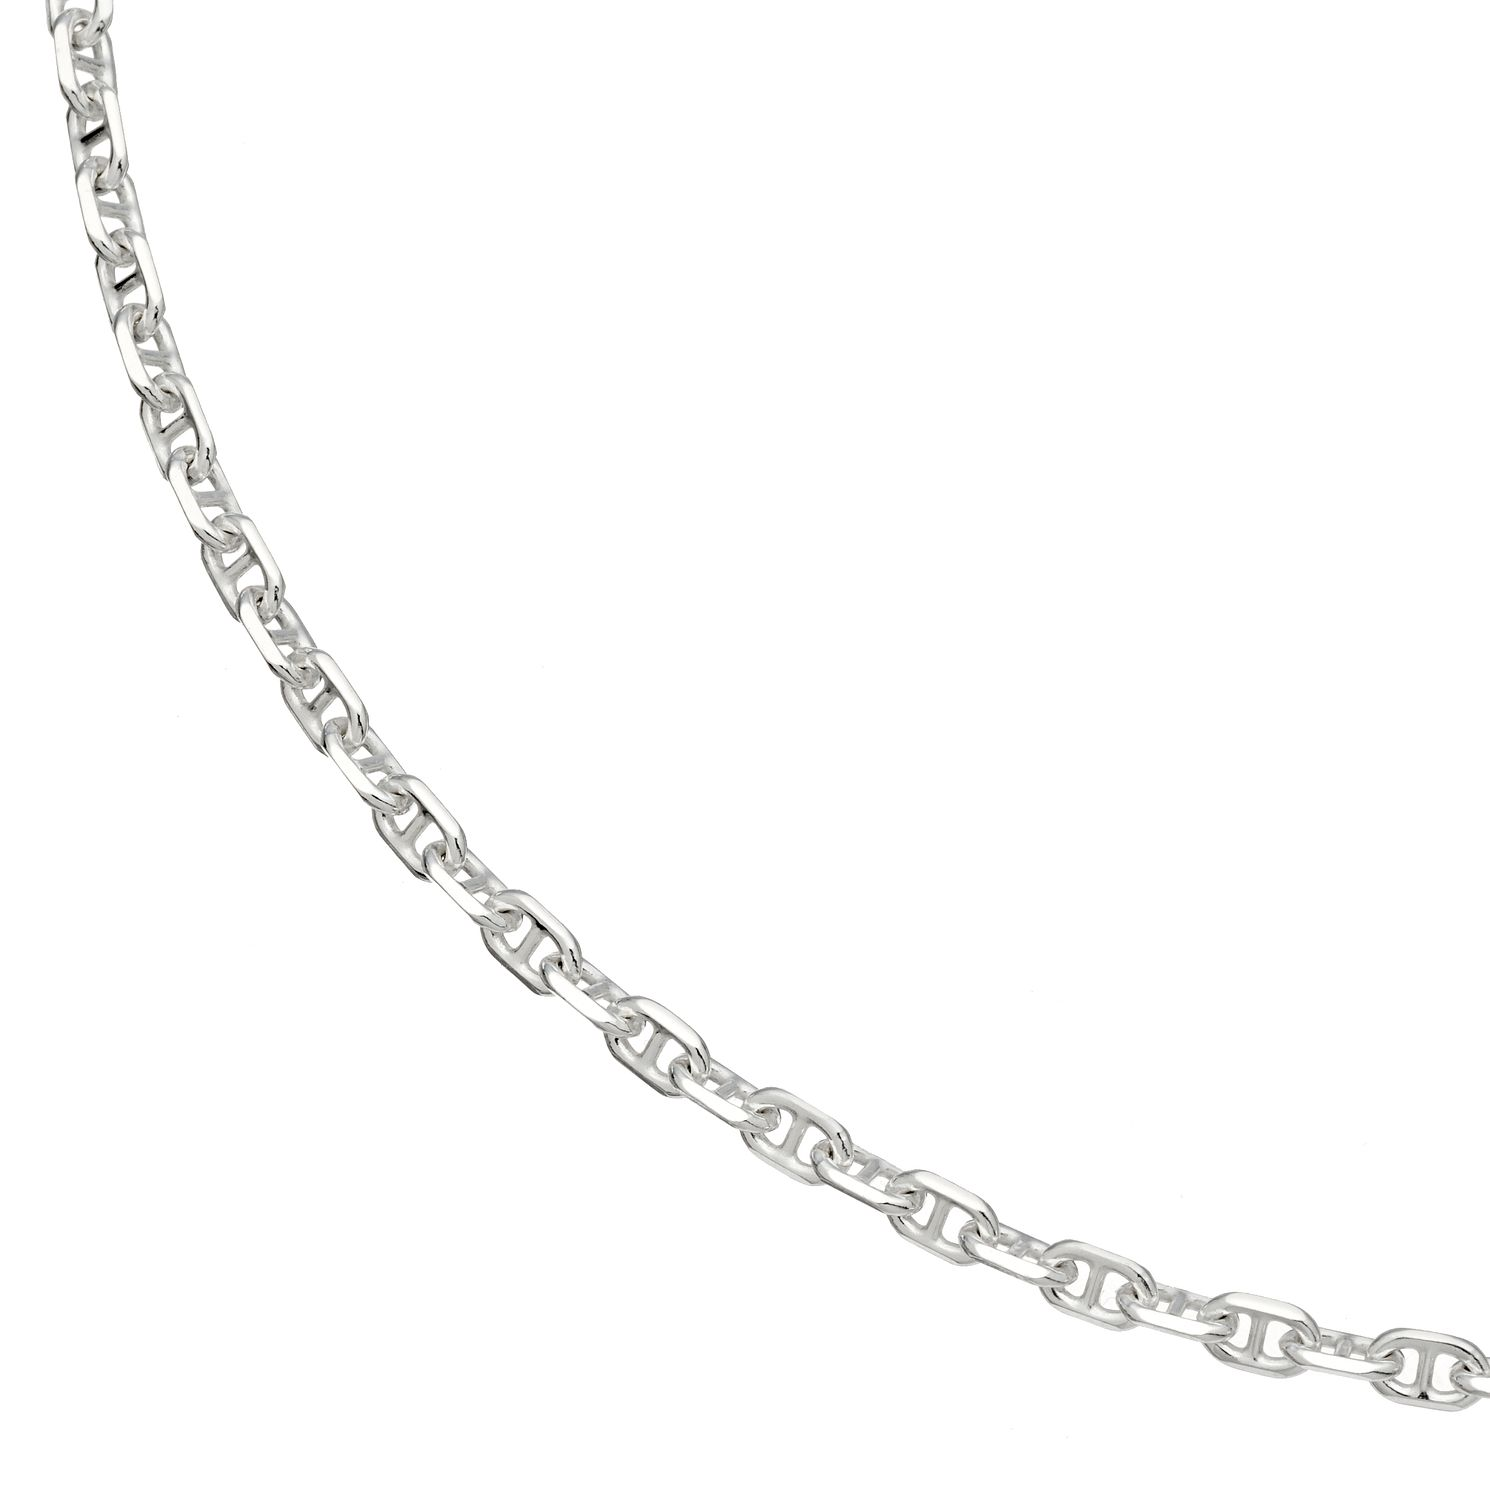 Silver Marina Chain Necklace 20 inches - Product number 4841557